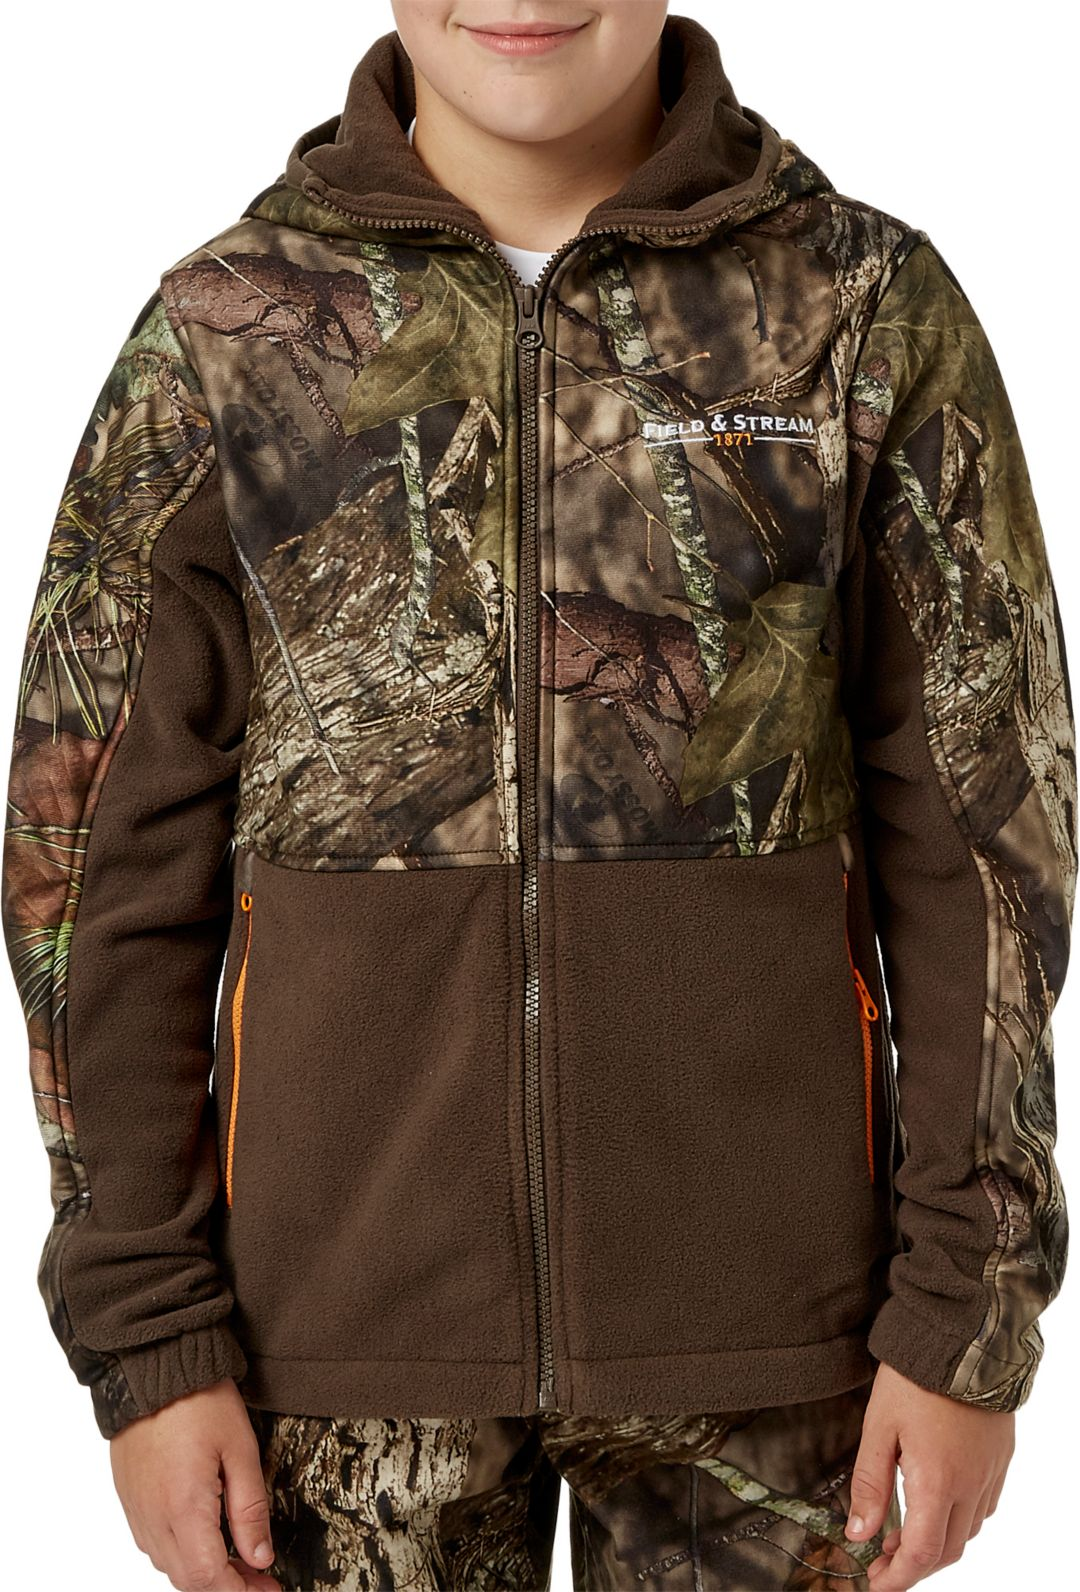 90a194bcbffb6 Field & Stream Youth Every Hunt Hooded Hunting Jacket | DICK'S ...